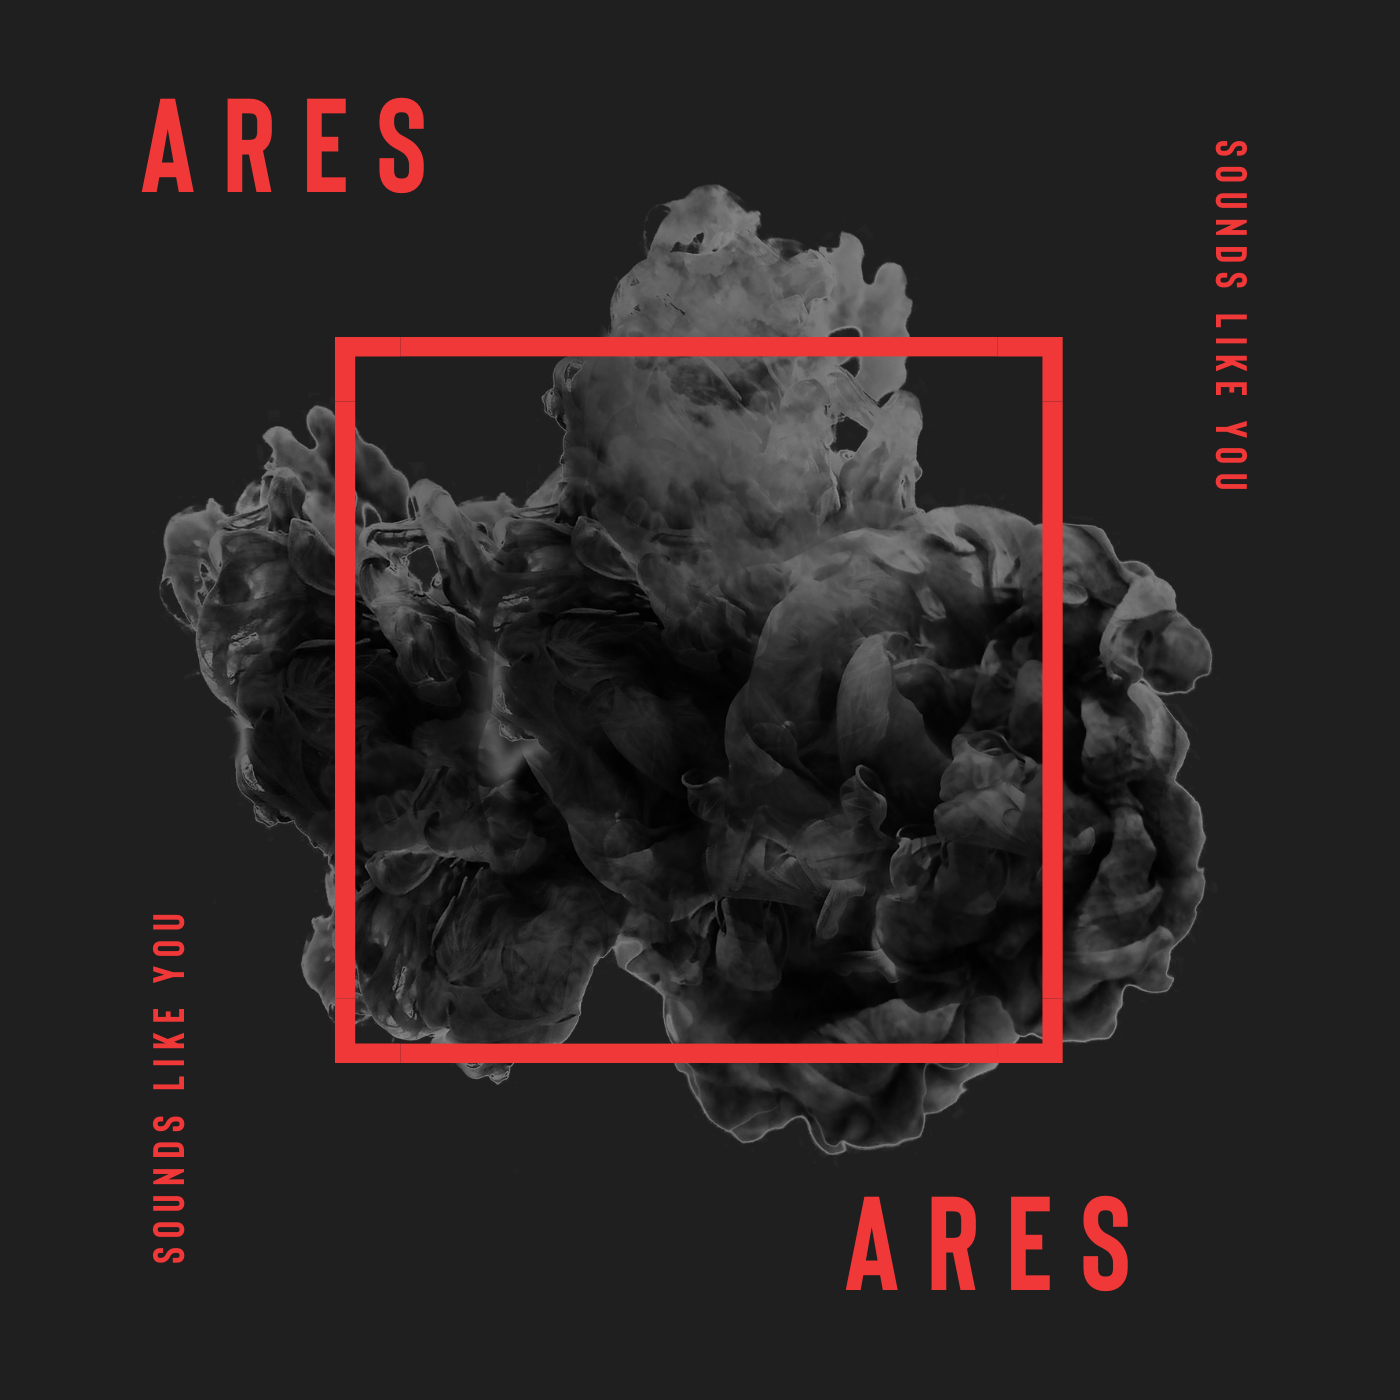 Ares - Deep House (Serum Presets Only)